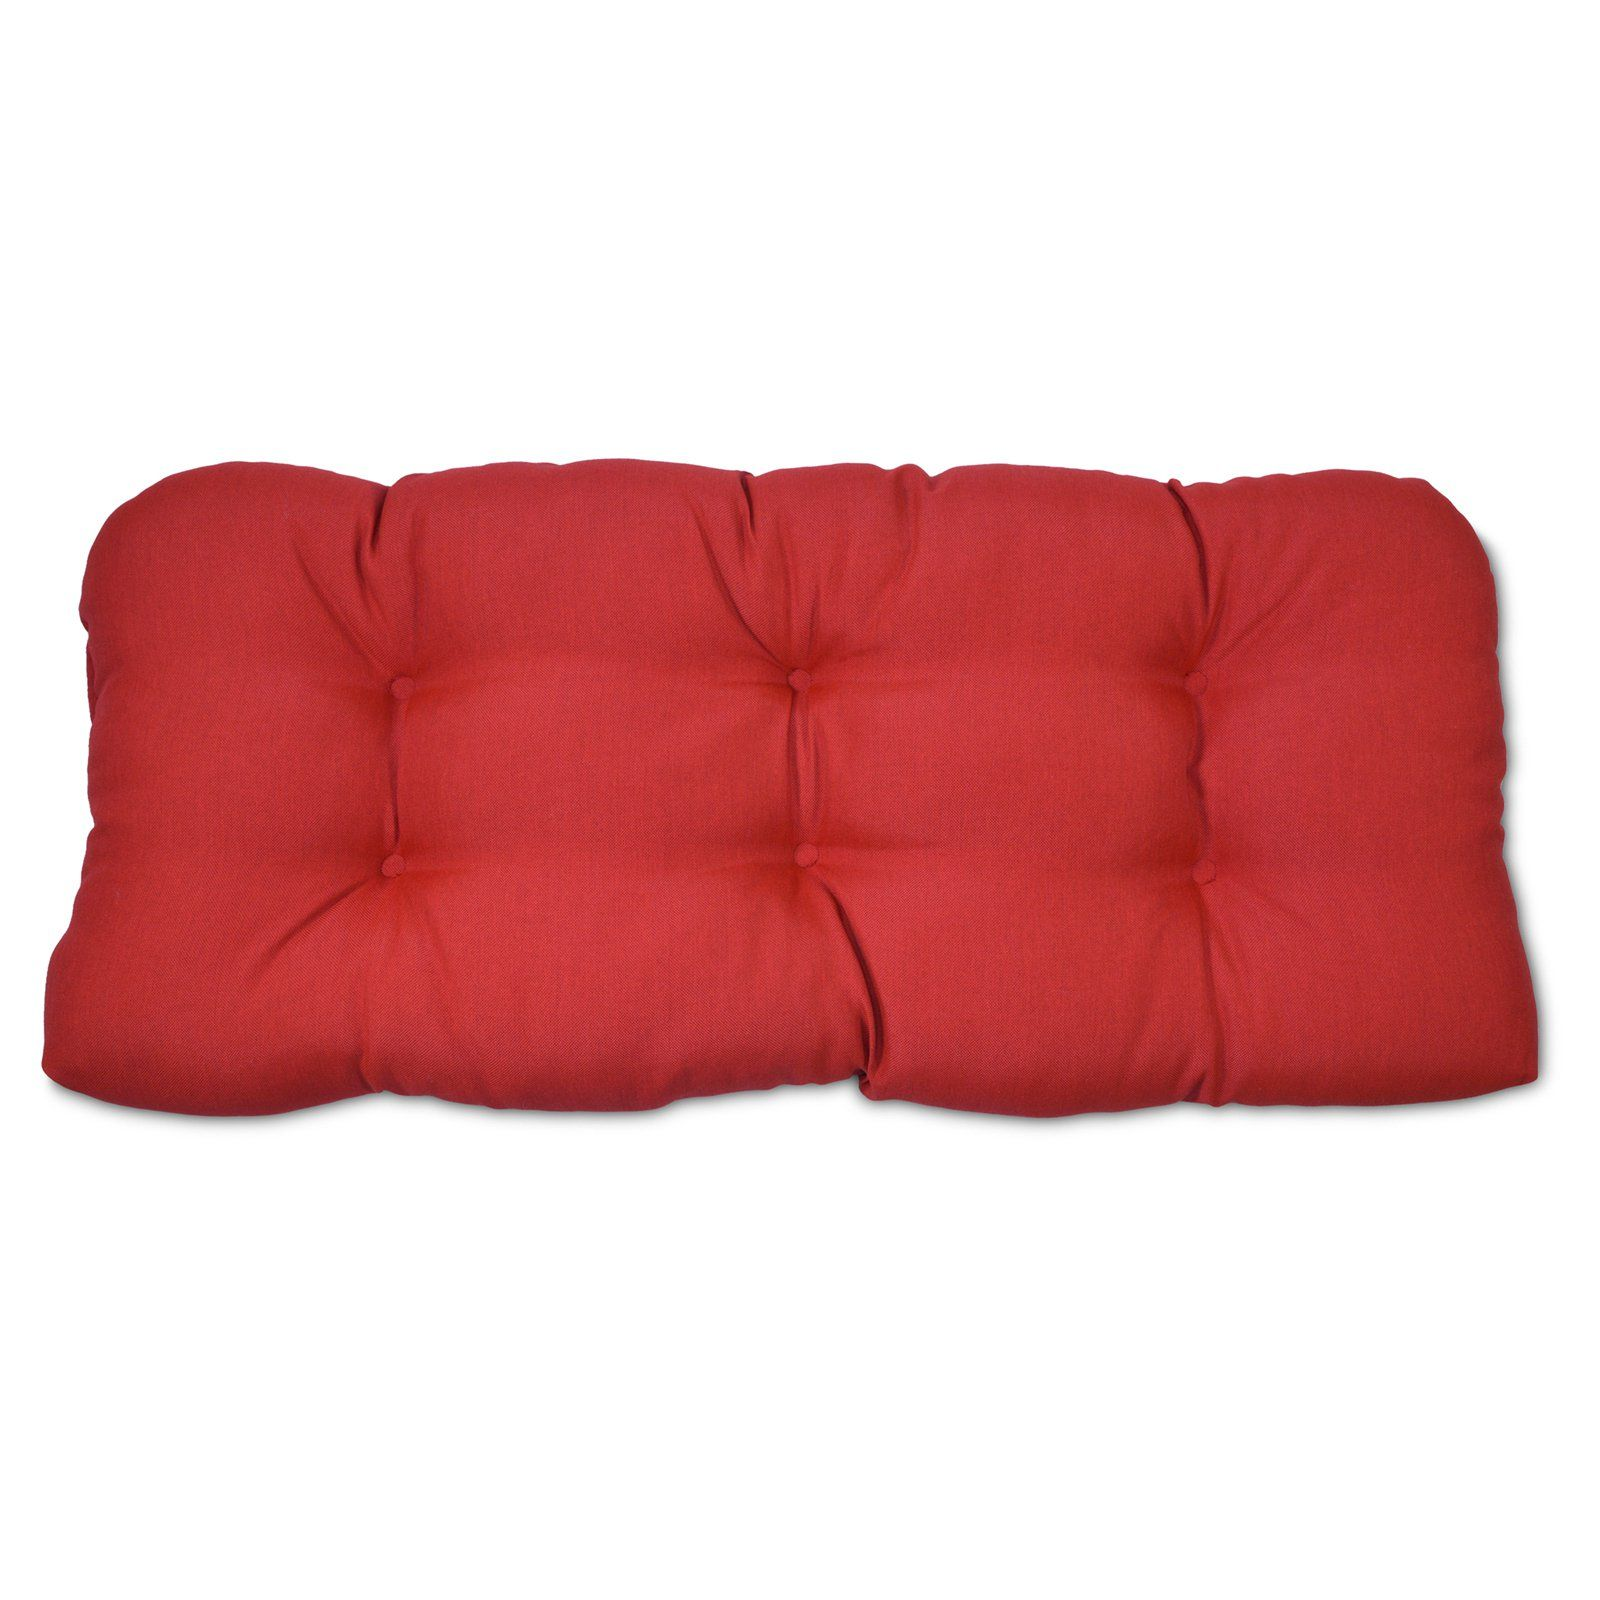 Plantation Patterns Tufted Settee Cushion Red